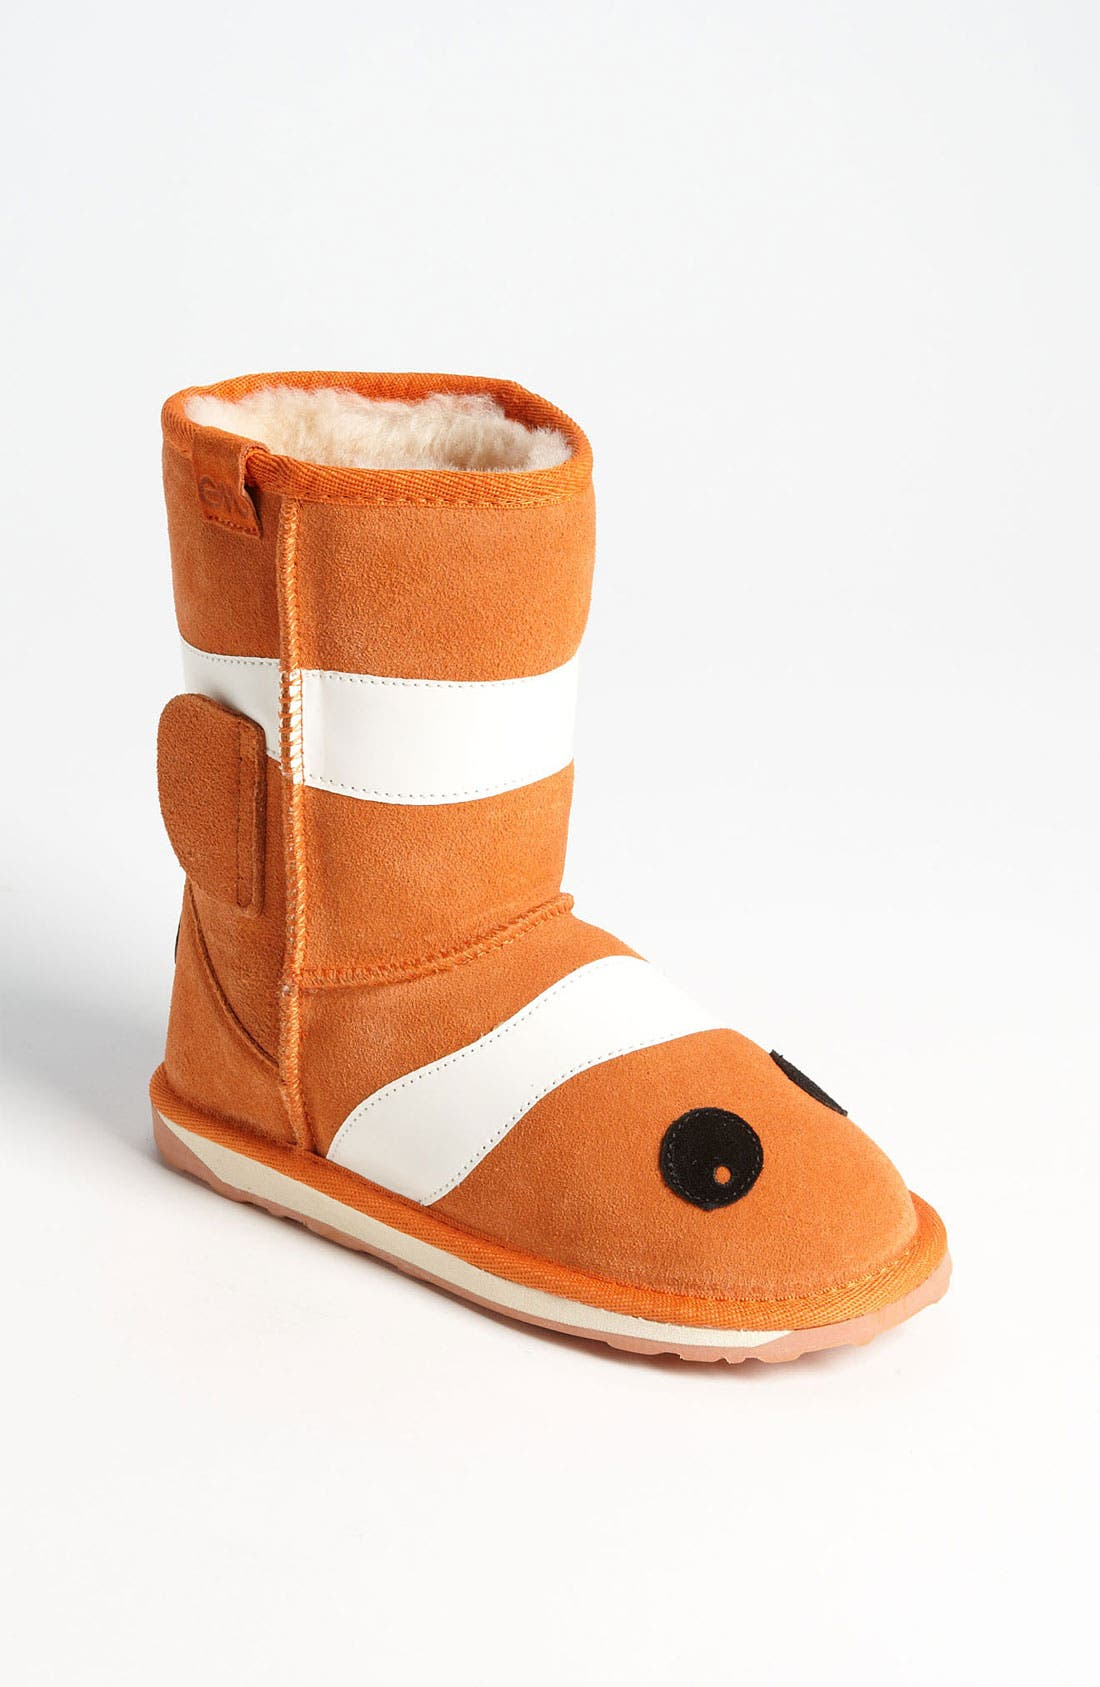 Alternate Image 1 Selected - EMU Australia 'Little Creatures - Clown Fish' Boot (Toddler, Little Kid & Big Kid)